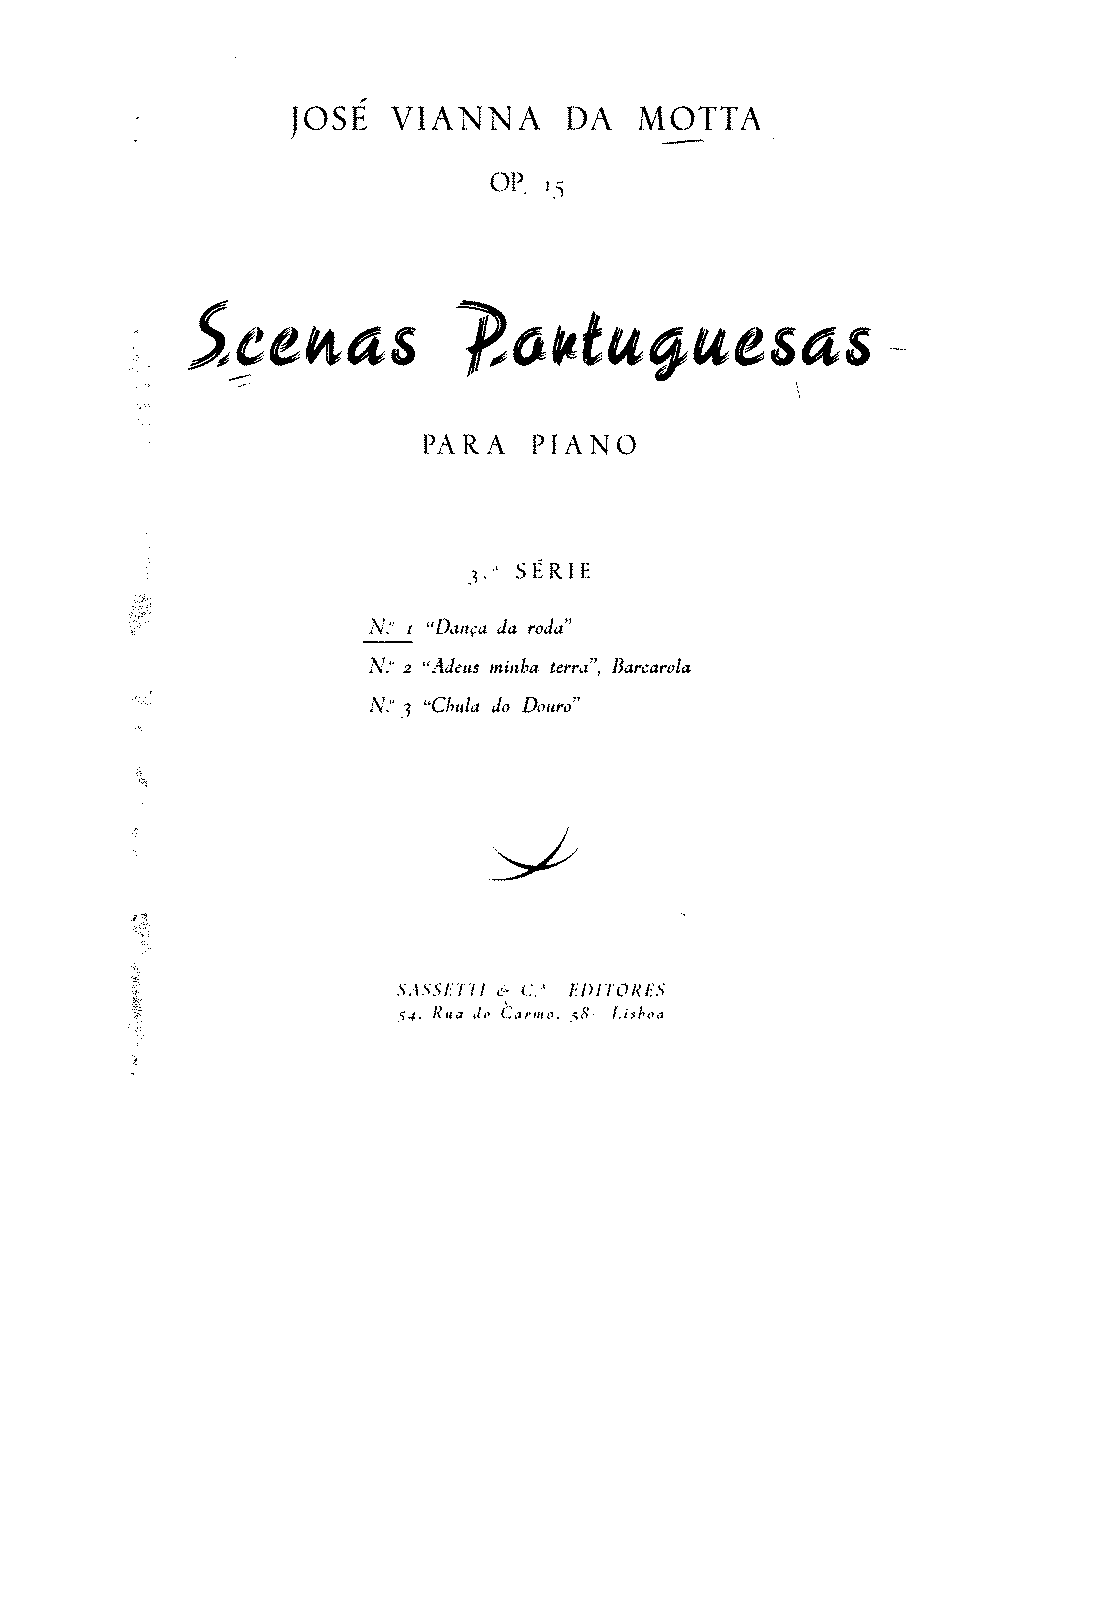 SIBLEY1802.11957.5a1c-39087012668564piano vol 1.pdf